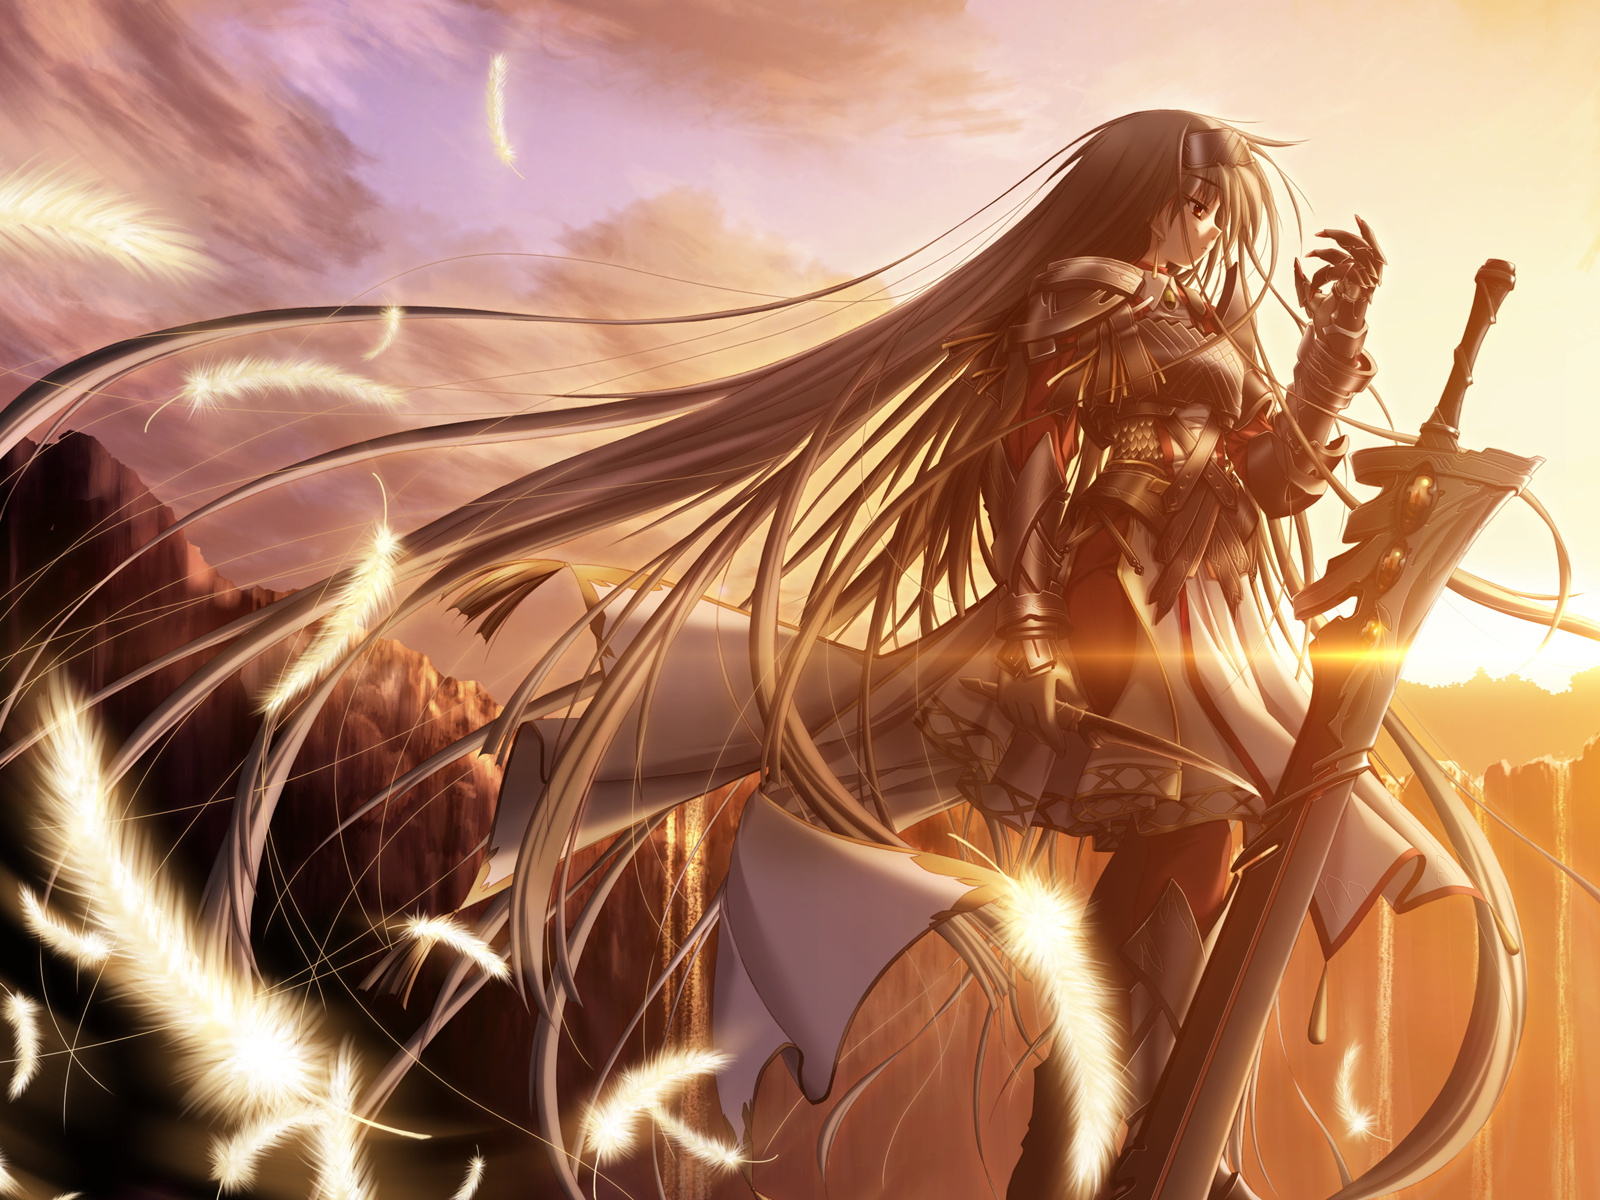 100 Amazing Anime/Manga Digital Art - Anime, wallpaperCoolvibe